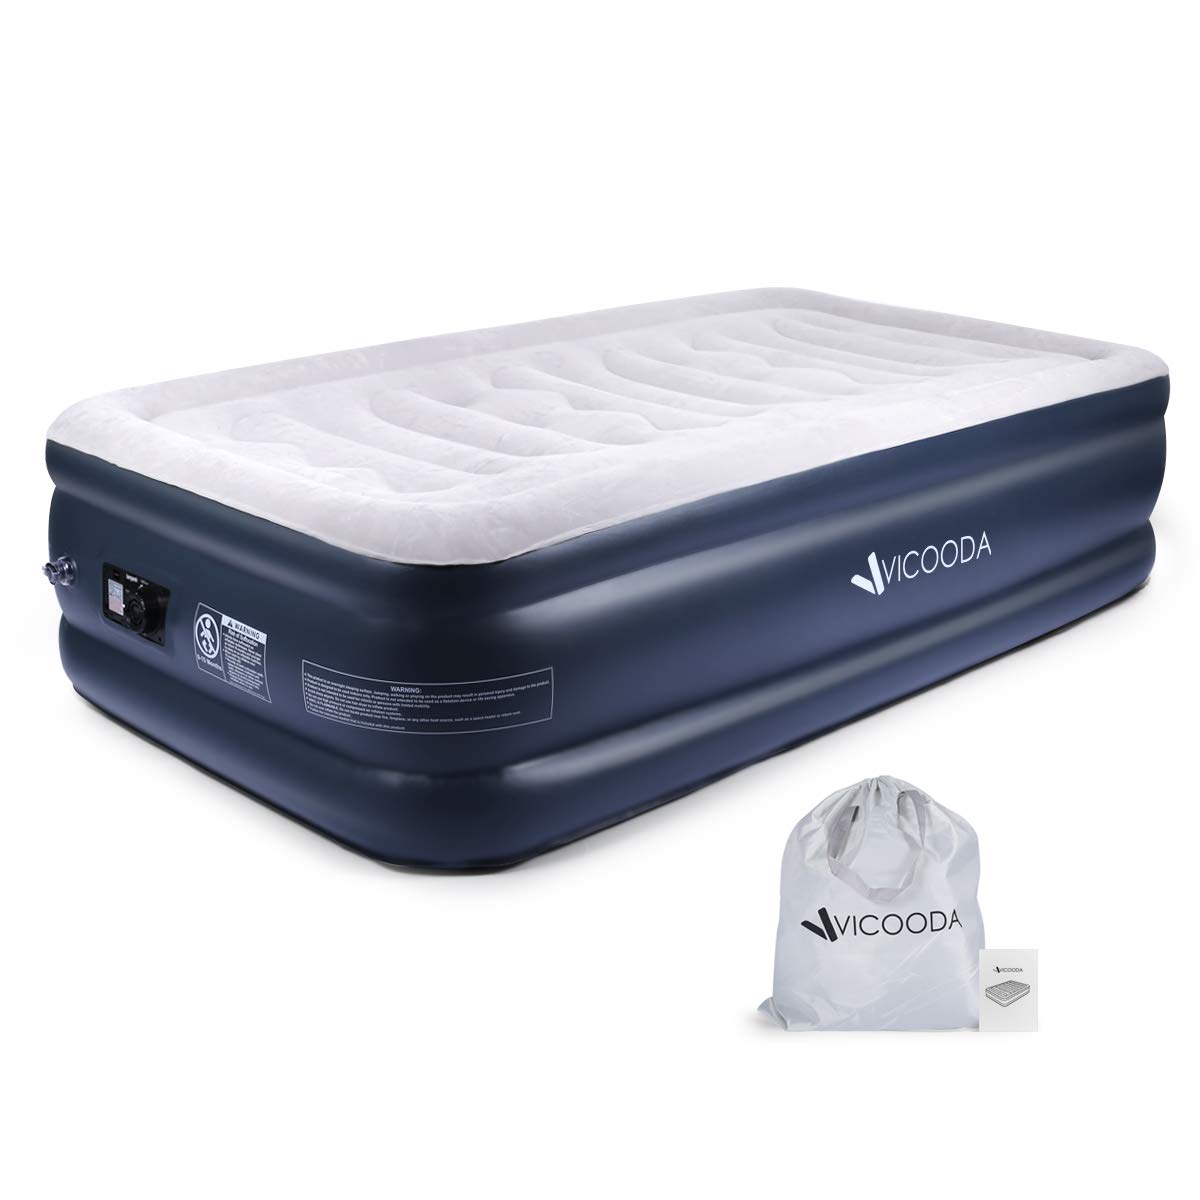 VICOODA Air Mattress Twin Size Blow Up Raised Guest Durable Firm Bed Inflatable Airbed with Built-in Electric Pump [Upgraded & Easy Setup], 18 inch in Height, 550 lb in Capacity, PVC Materials